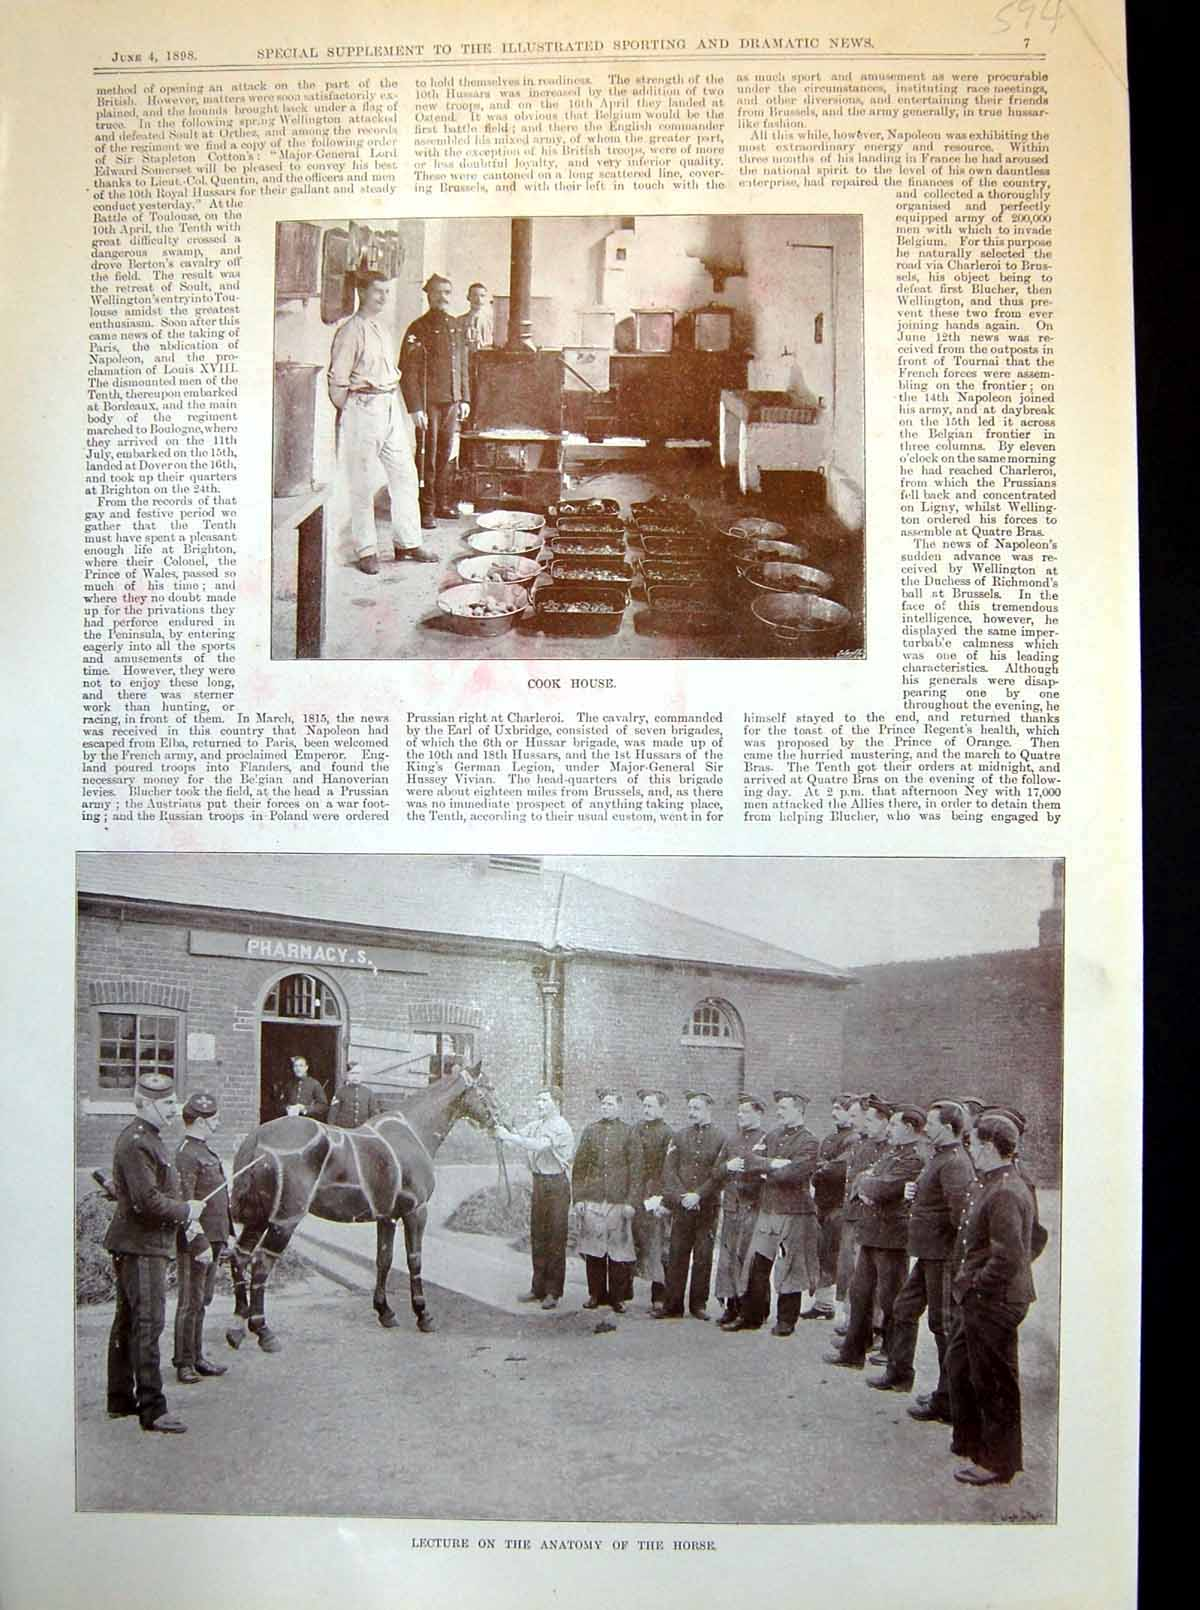 Old-Antique-Print-Cook-House-Lecture-Horse-Anatomy-Signallers-Church-1898-19th